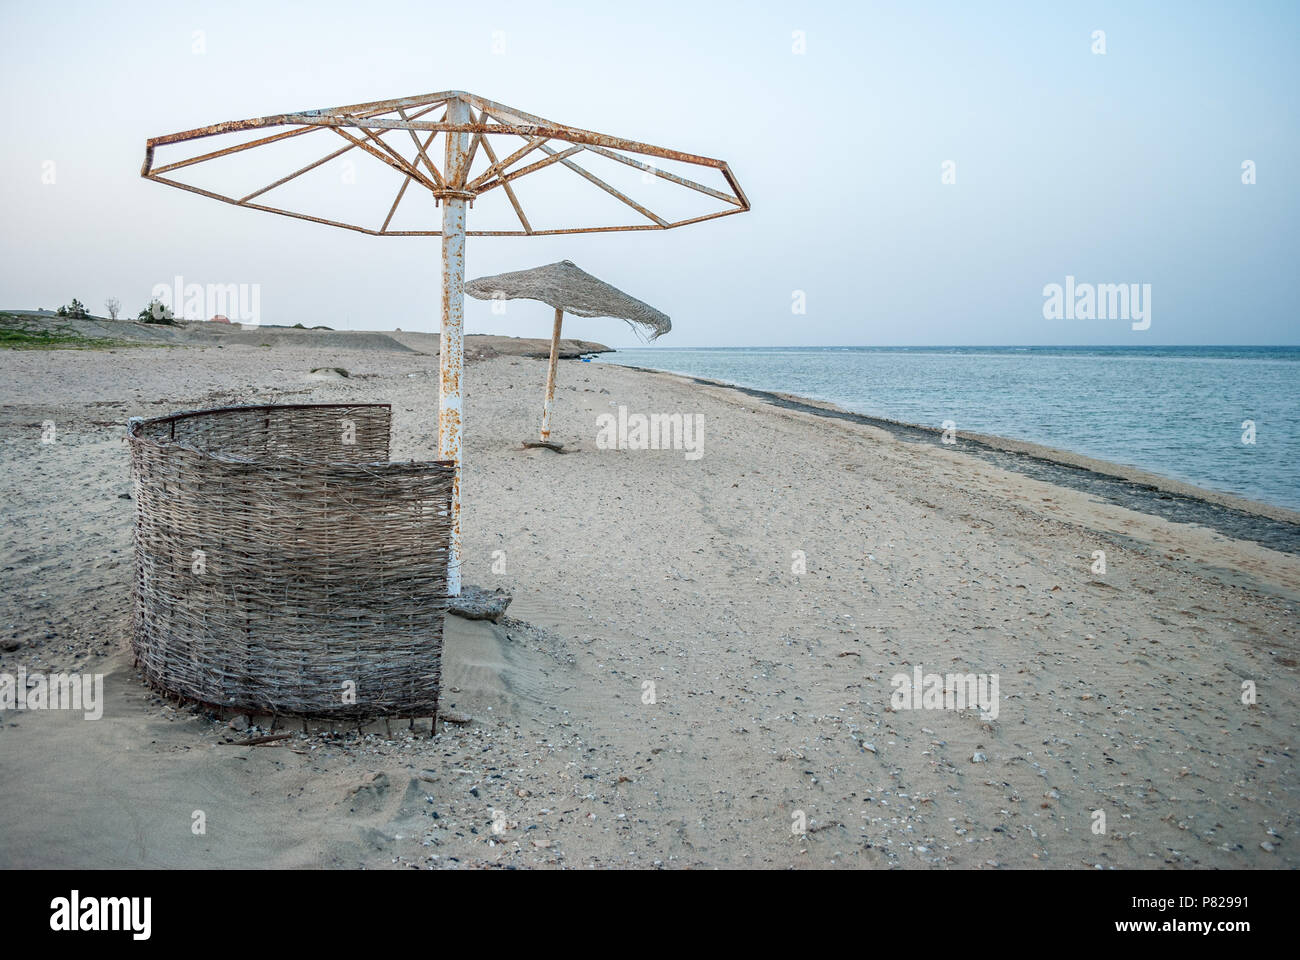 Umbrella without fabric on the beach, Red Sea, Egypt - Stock Image